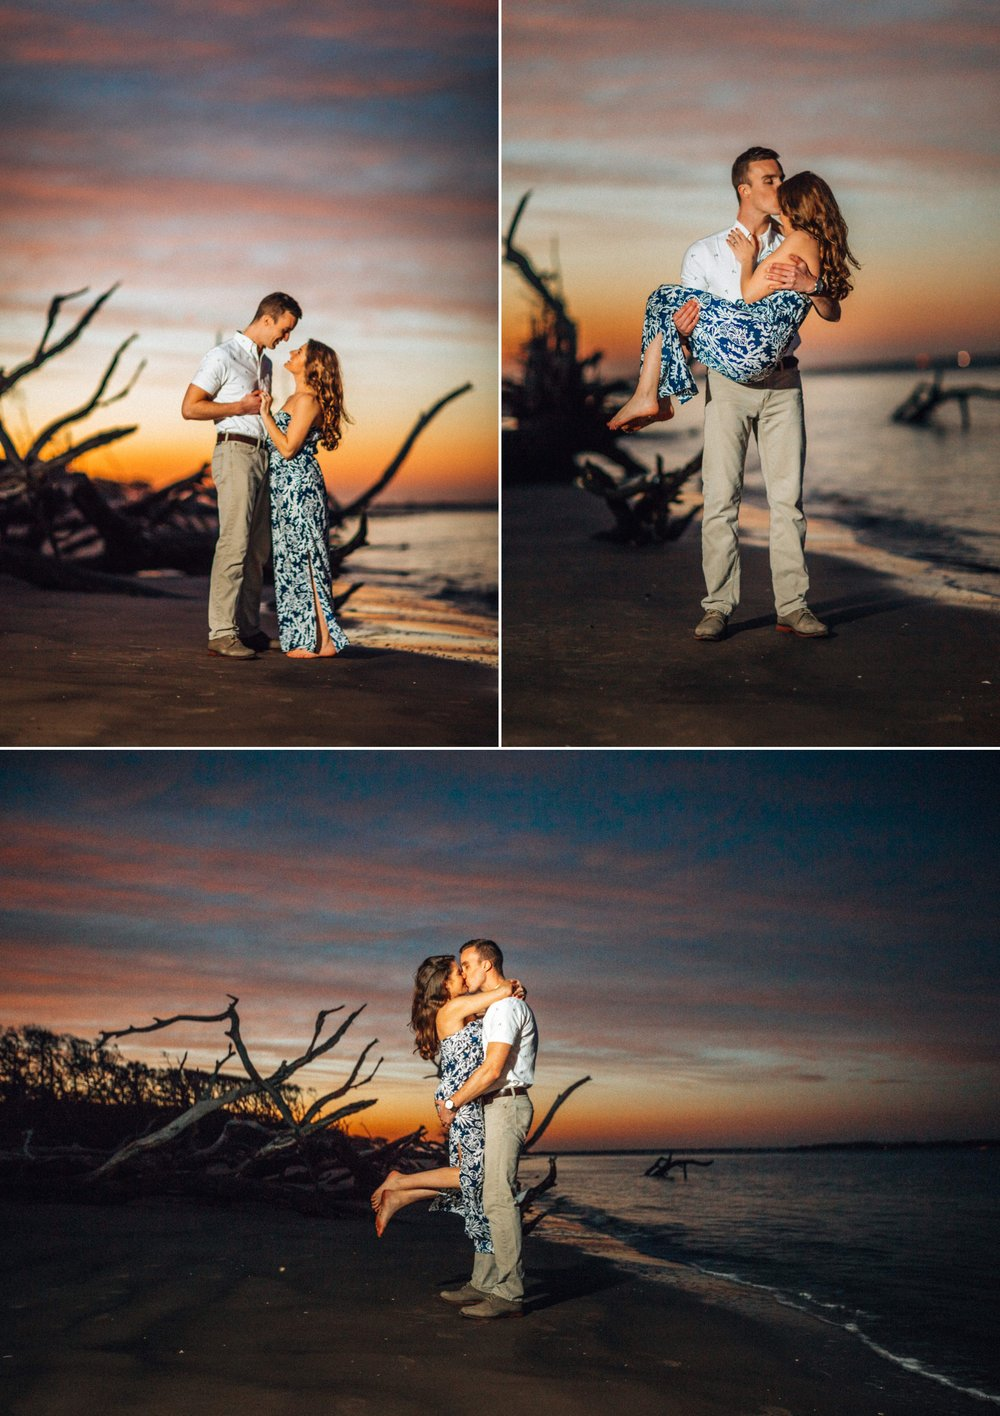 Alessi + Josh's romantic sunset engagement photo adventure on an amazing driftwood beach location at Big Talbot Island, Jacksonville, Florida // Engagement style inspiration: she wore a navy & white floral maxi dress, he wore white button-down, with khaki pants // Engagement ring: Pavé halo solitaire diamond with pavé band // Photographer by: Shaina DeCiryan Lifestyle + Wedding Photography @shainadeciryan